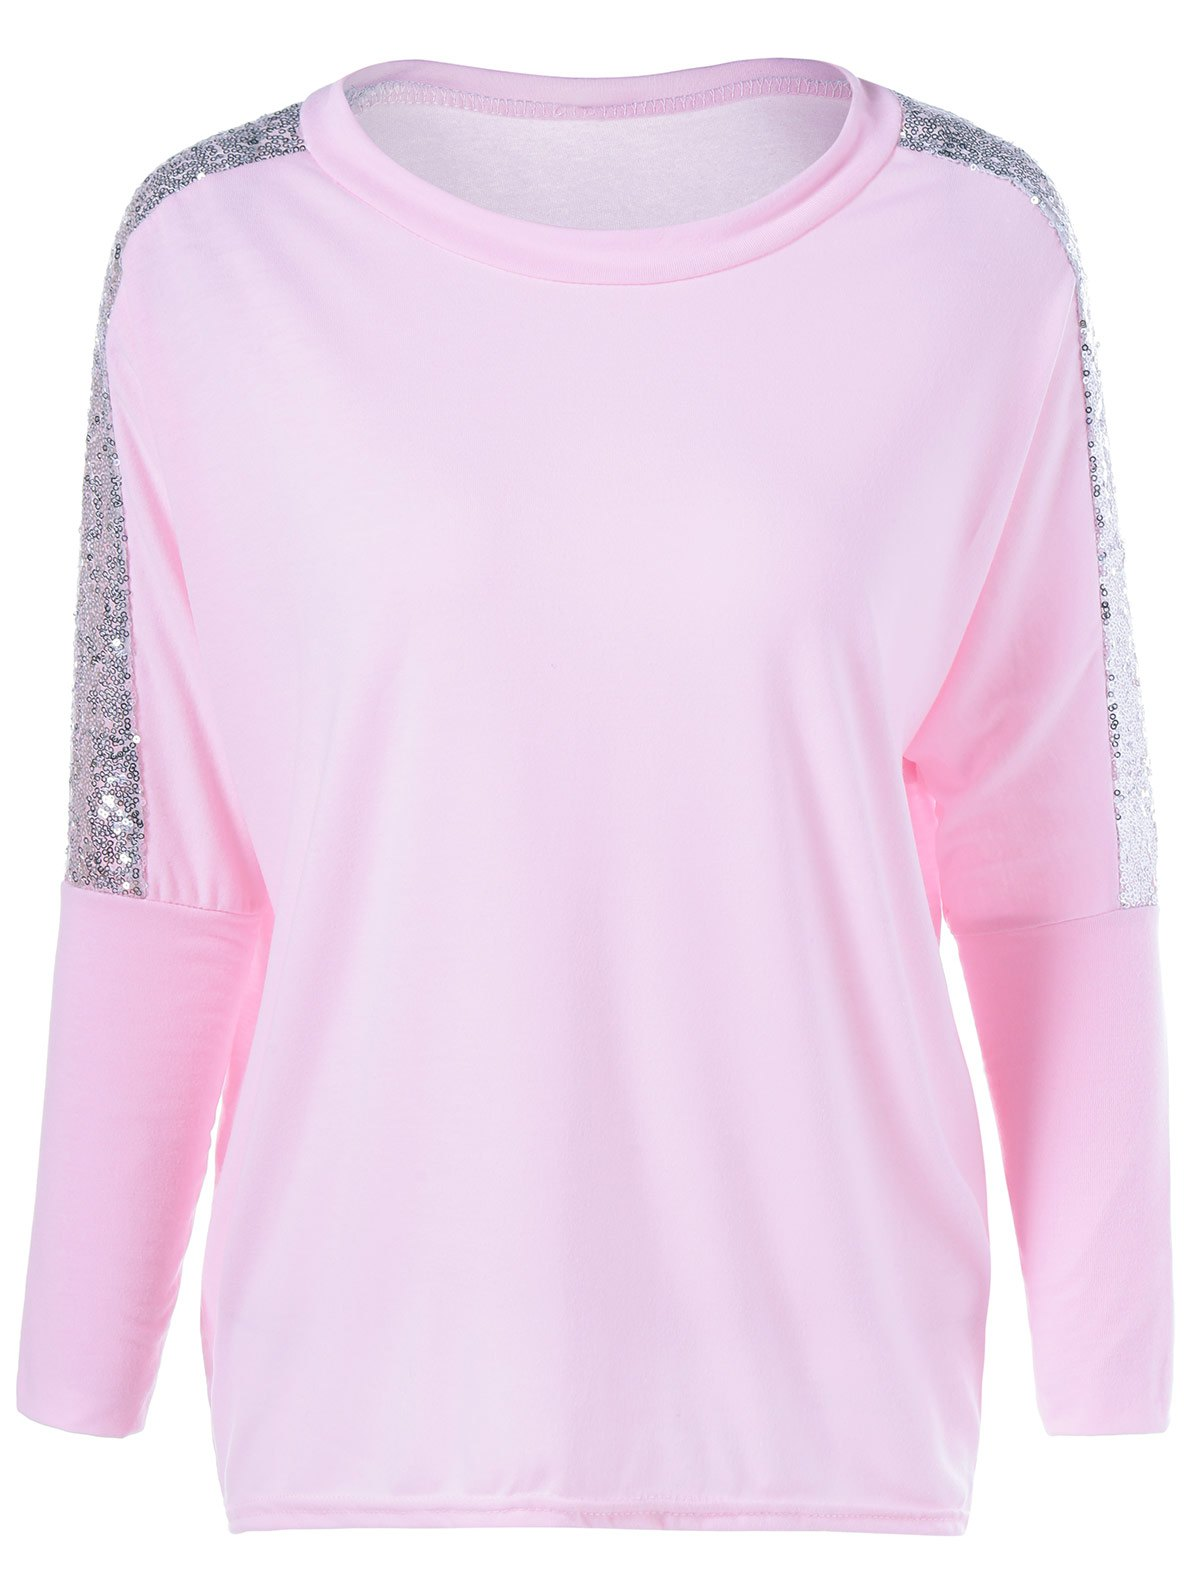 Sequin Jewel Neck Long Sleeve T-Shirt - PINK L